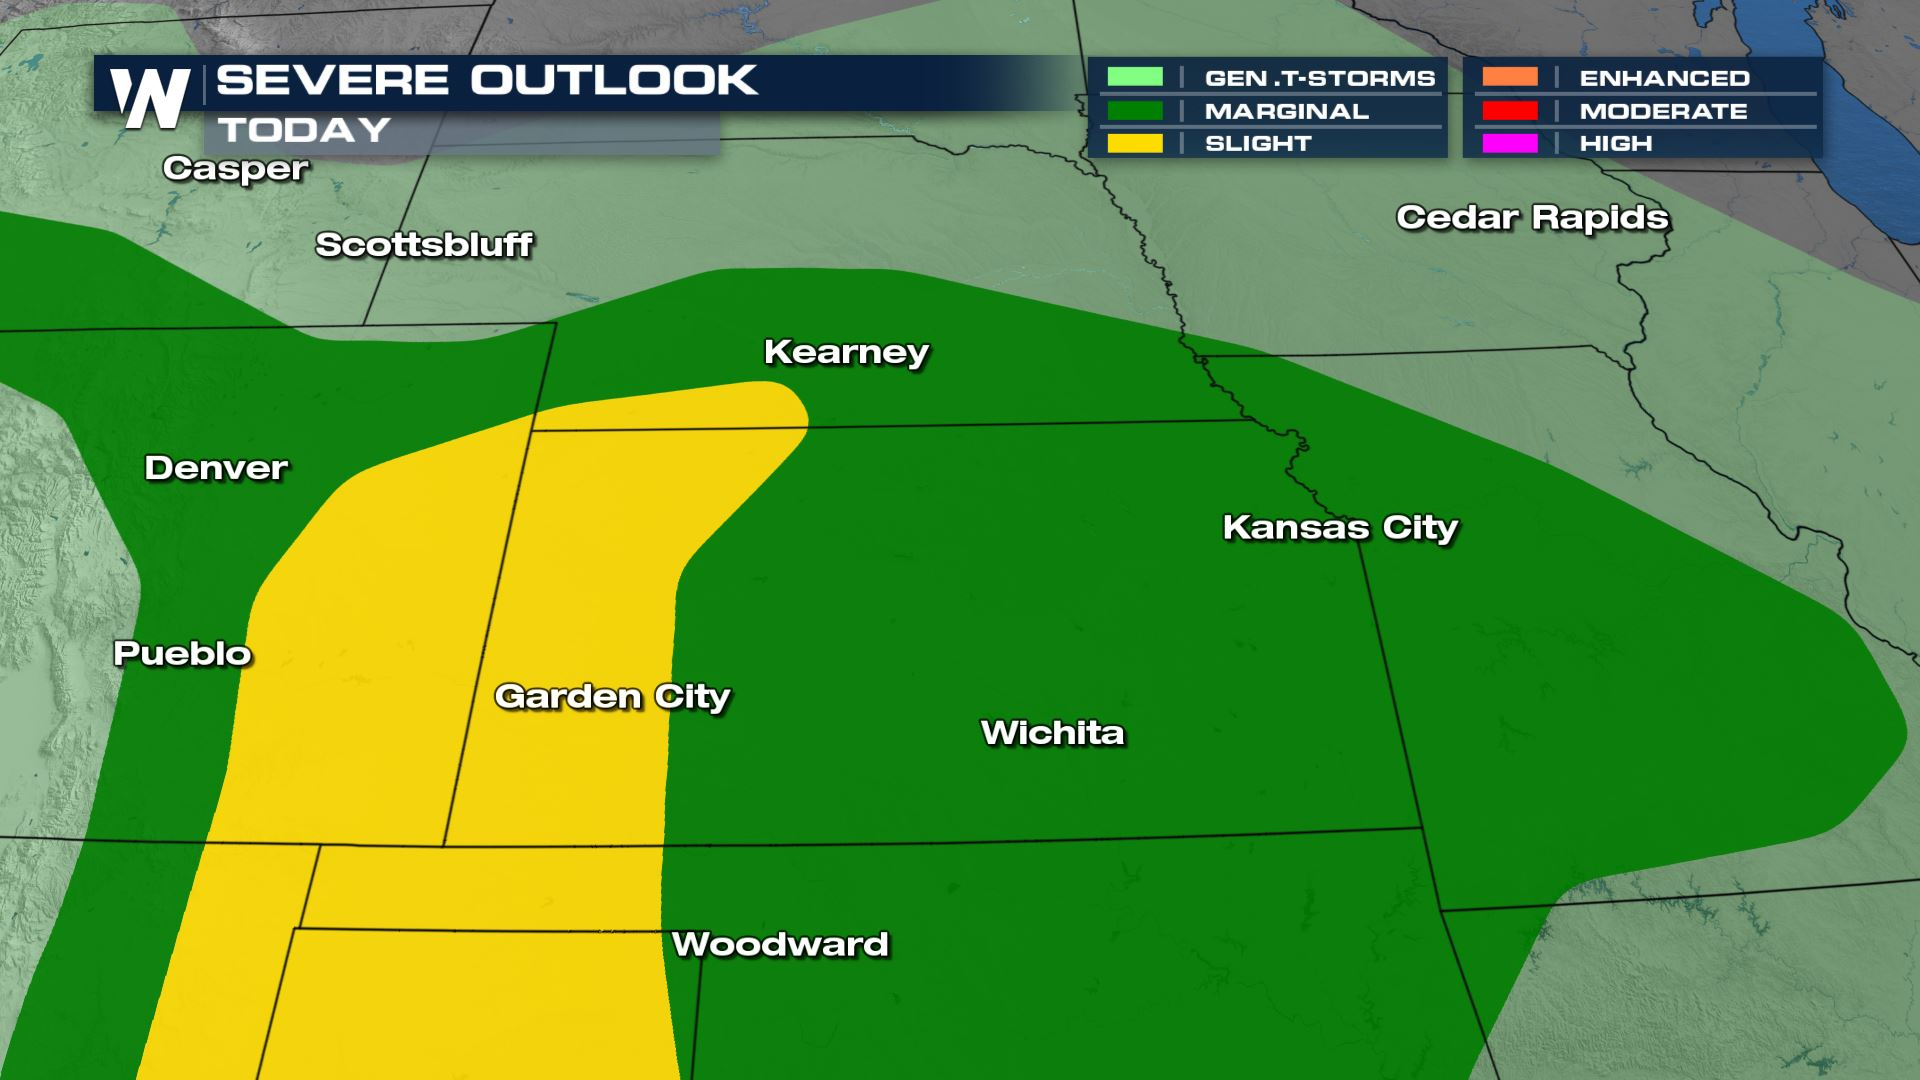 Another Round of Storms for the Front Range & I-70 Sunday